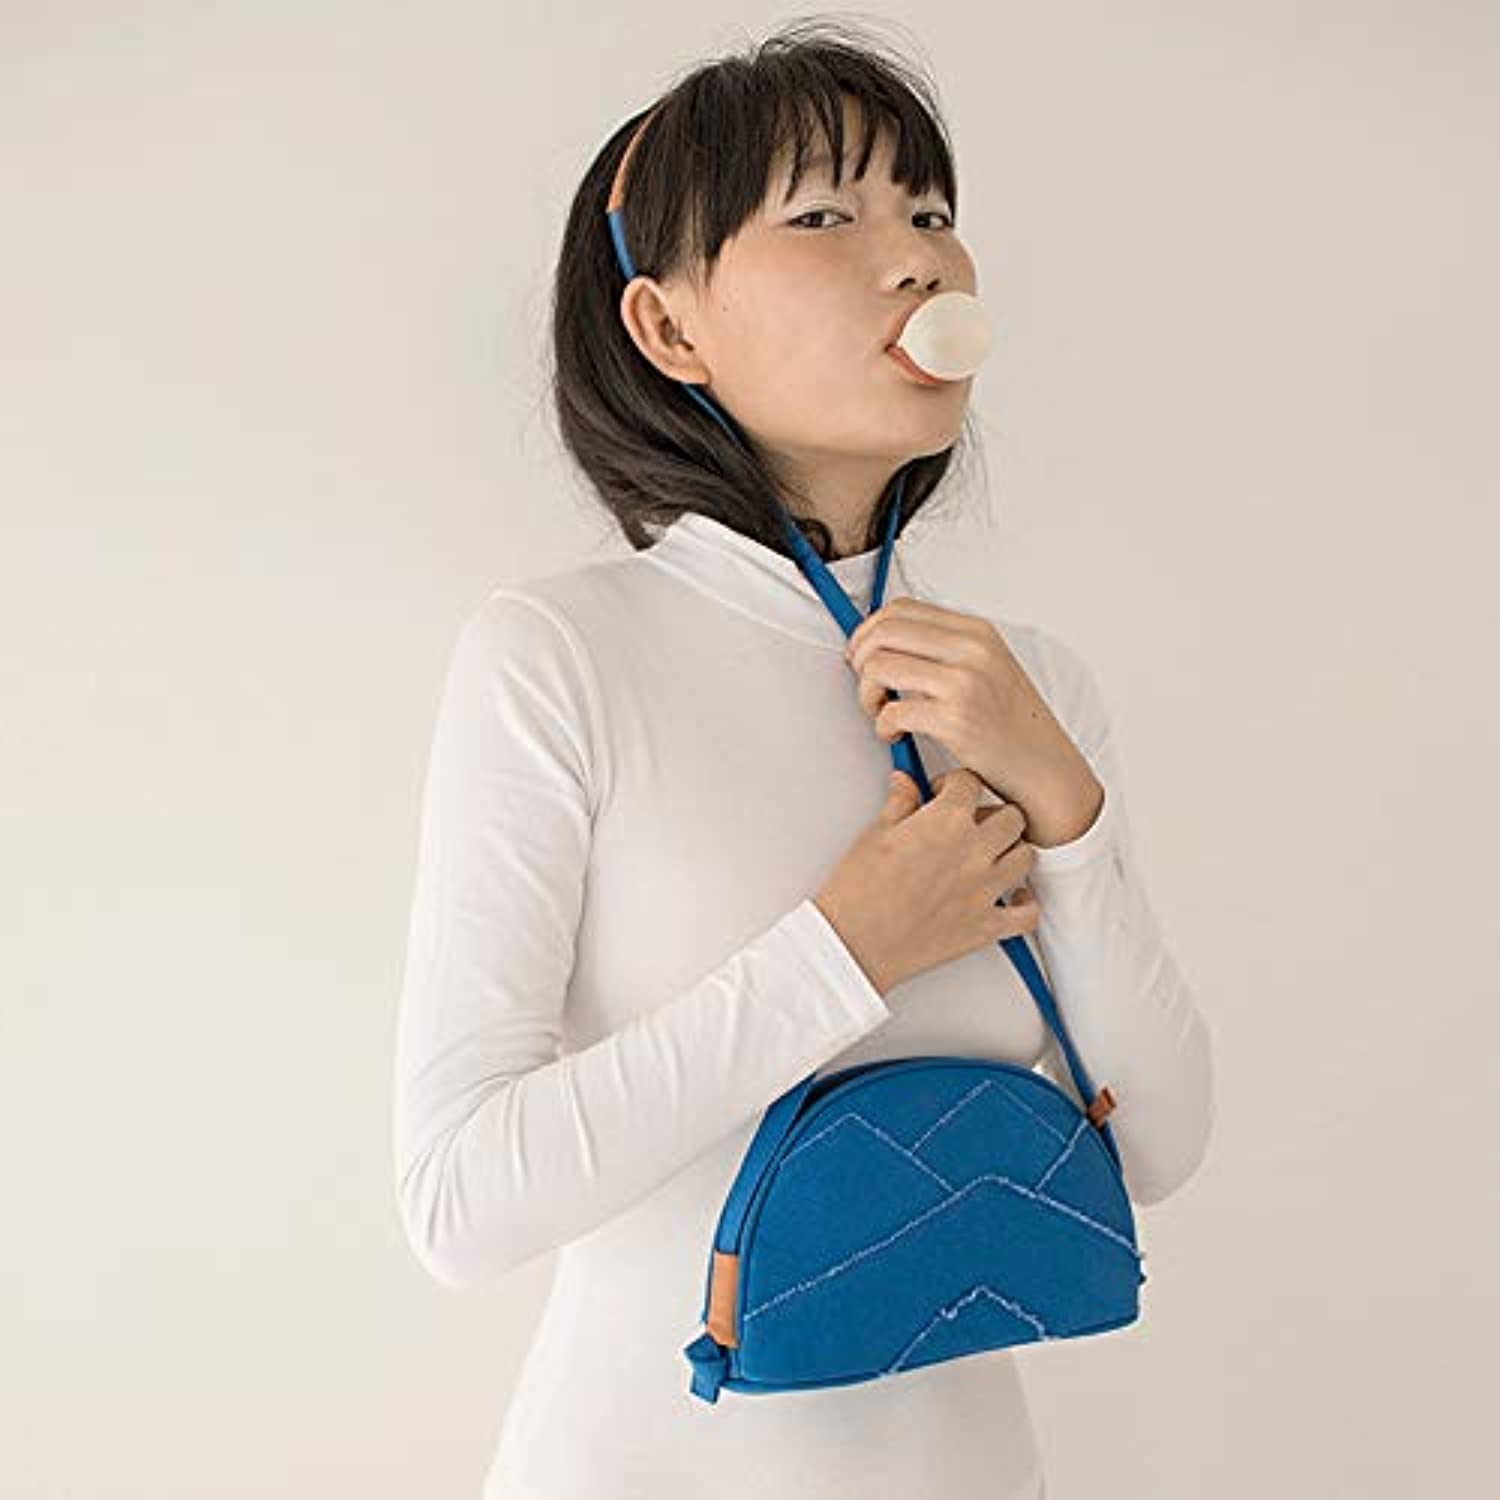 WANGZHAO The Expression Series The Earth, The Shell Bag, The Women's Bag Skew Across The Bag, The Small Bag, The Personality Canvas Bag.